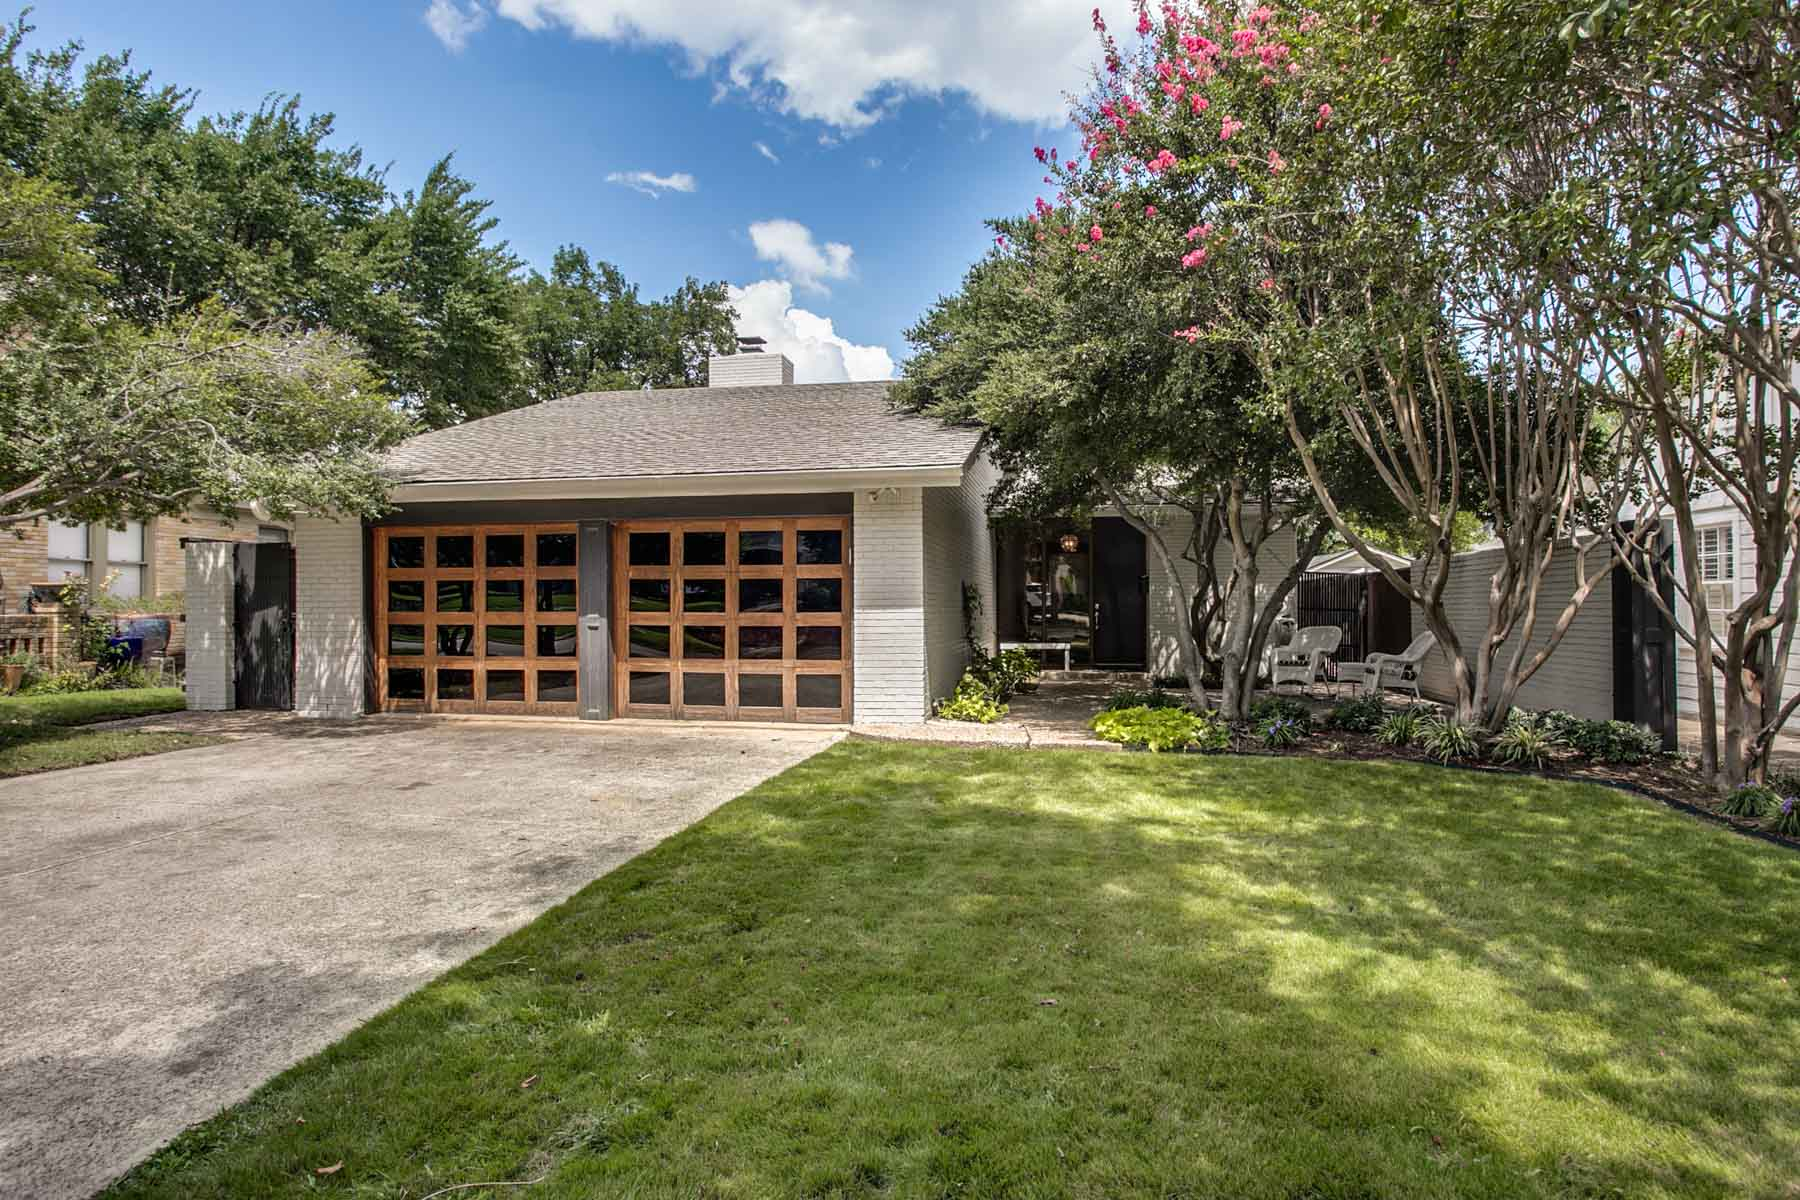 Single Family Home for Sale at Modern Style- 76107 4108 Mattison Ave. Fort Worth, Texas, 76107 United States